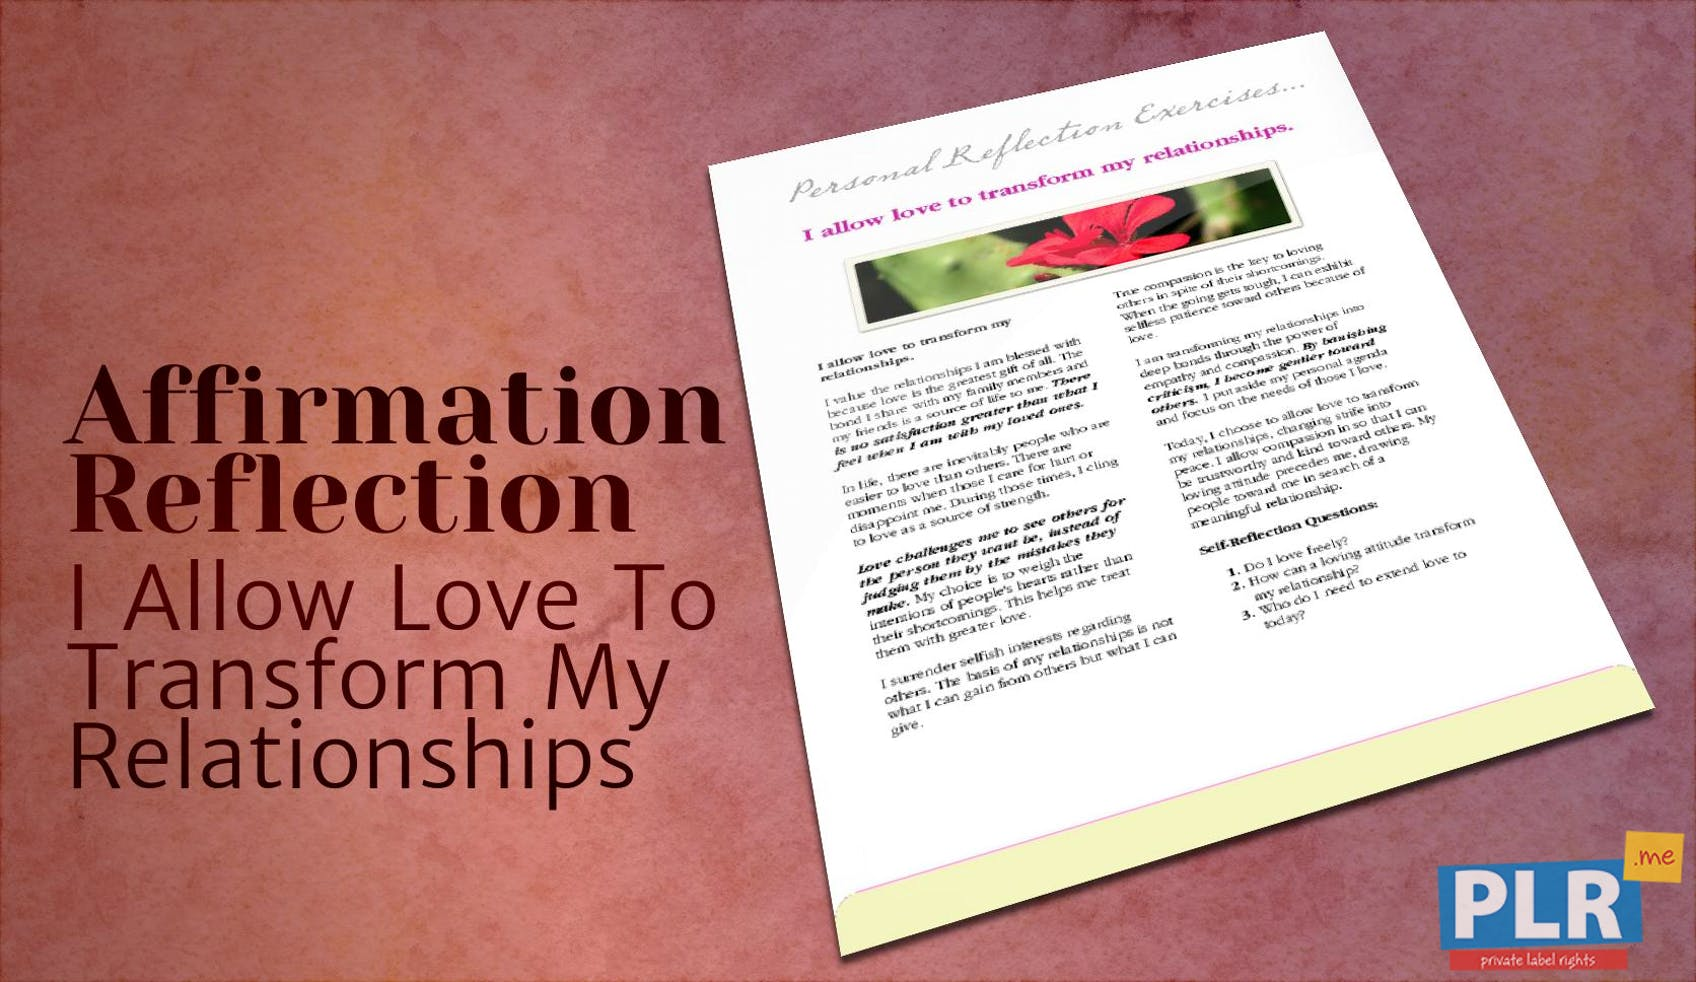 I Allow Love To Transform My Relationships